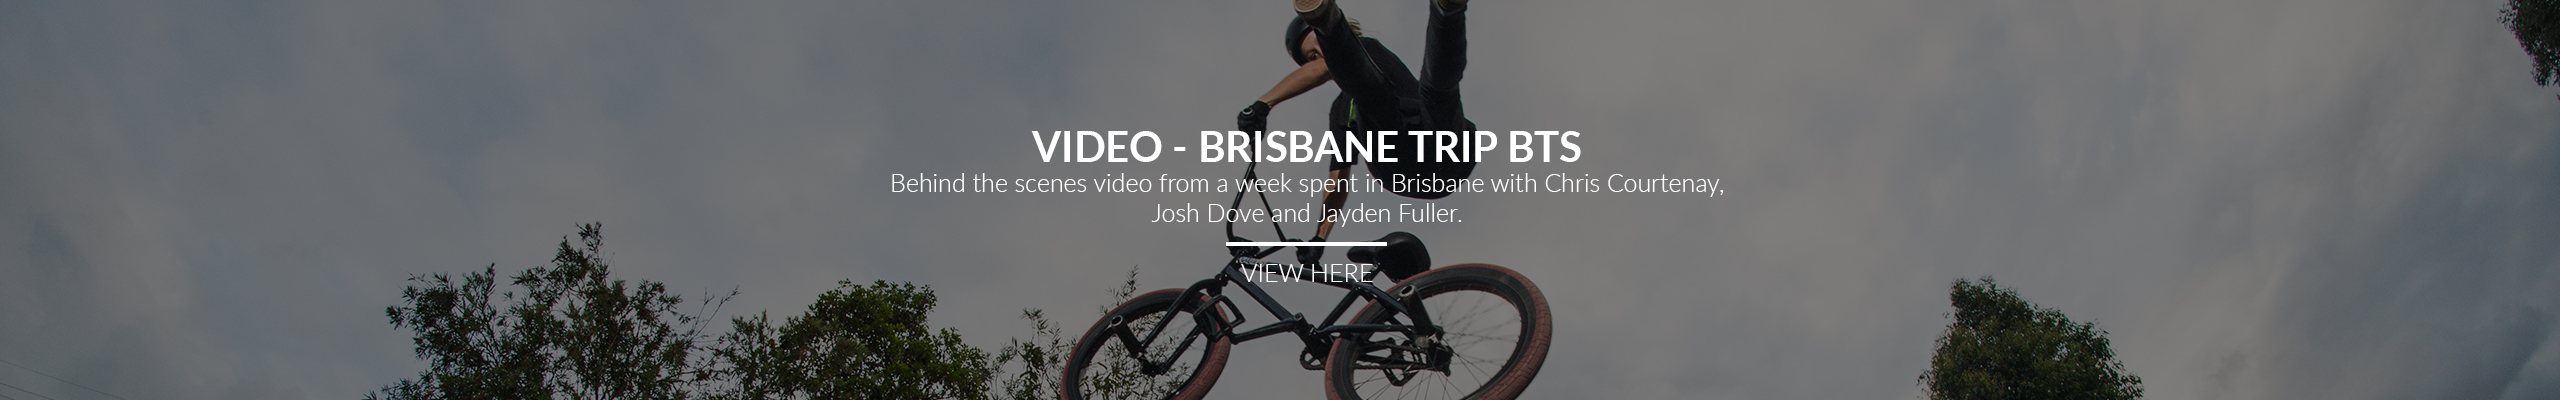 Brisbane BTS video